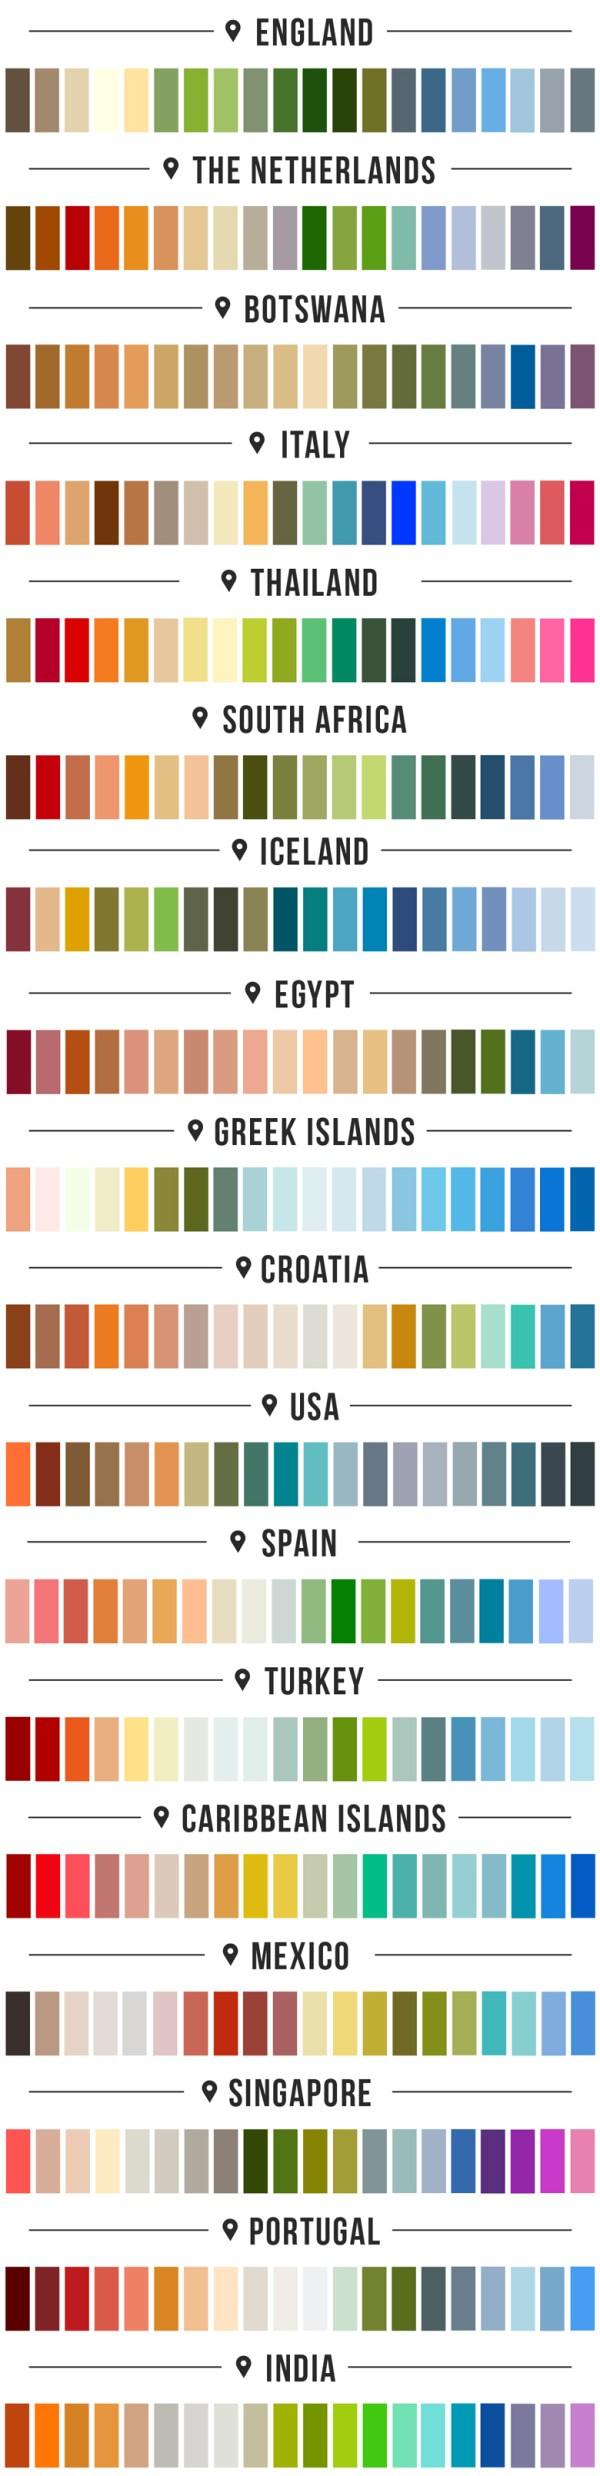 Beautiful Color Palettes Of Countries From Around The World